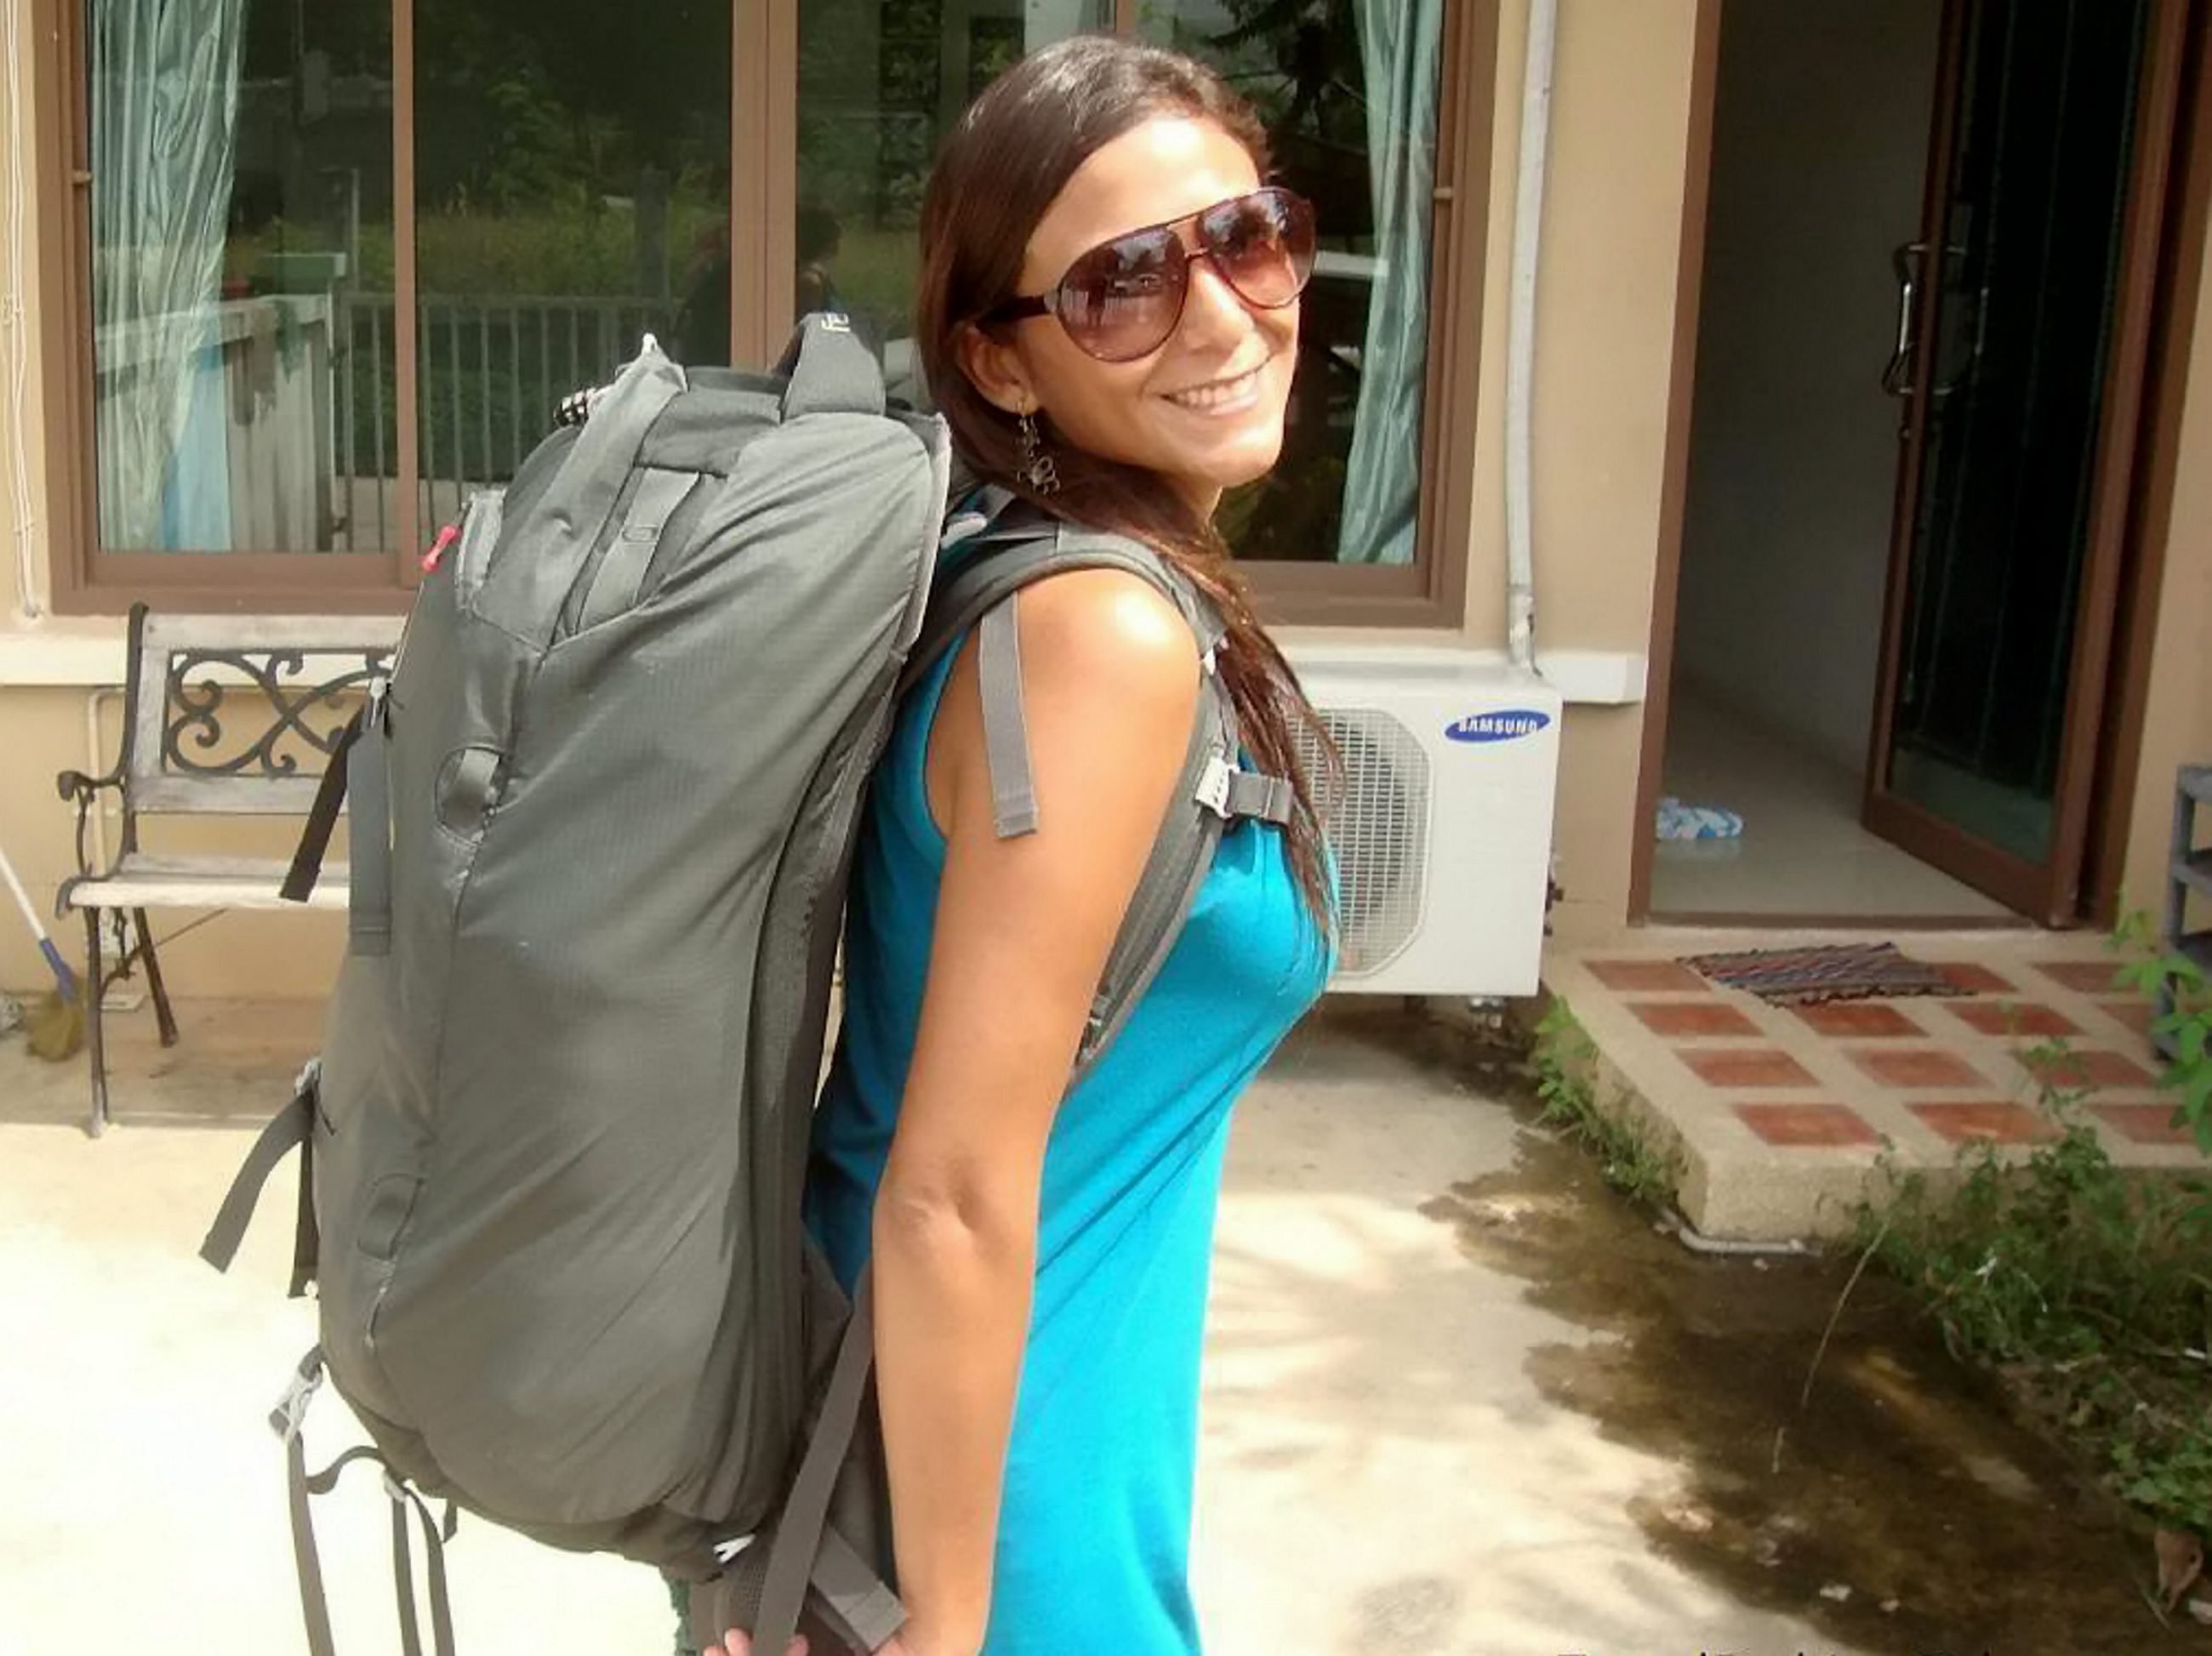 SWNS_BACKPACKING_03